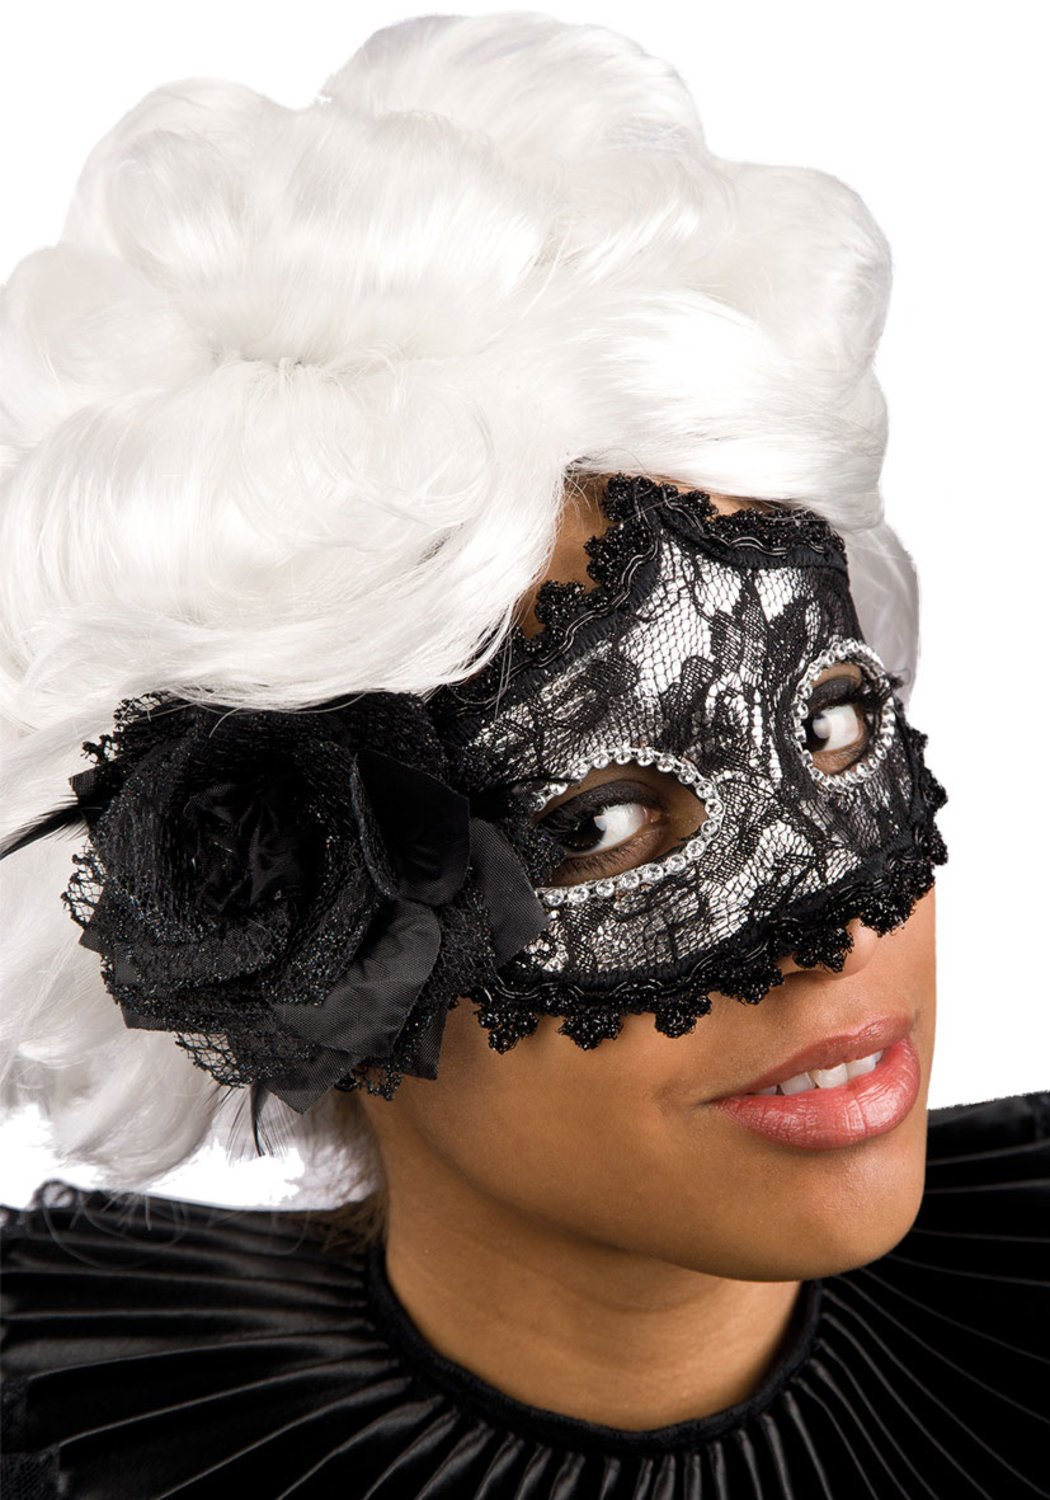 Ansiktsmask - Black lace and feathers mask